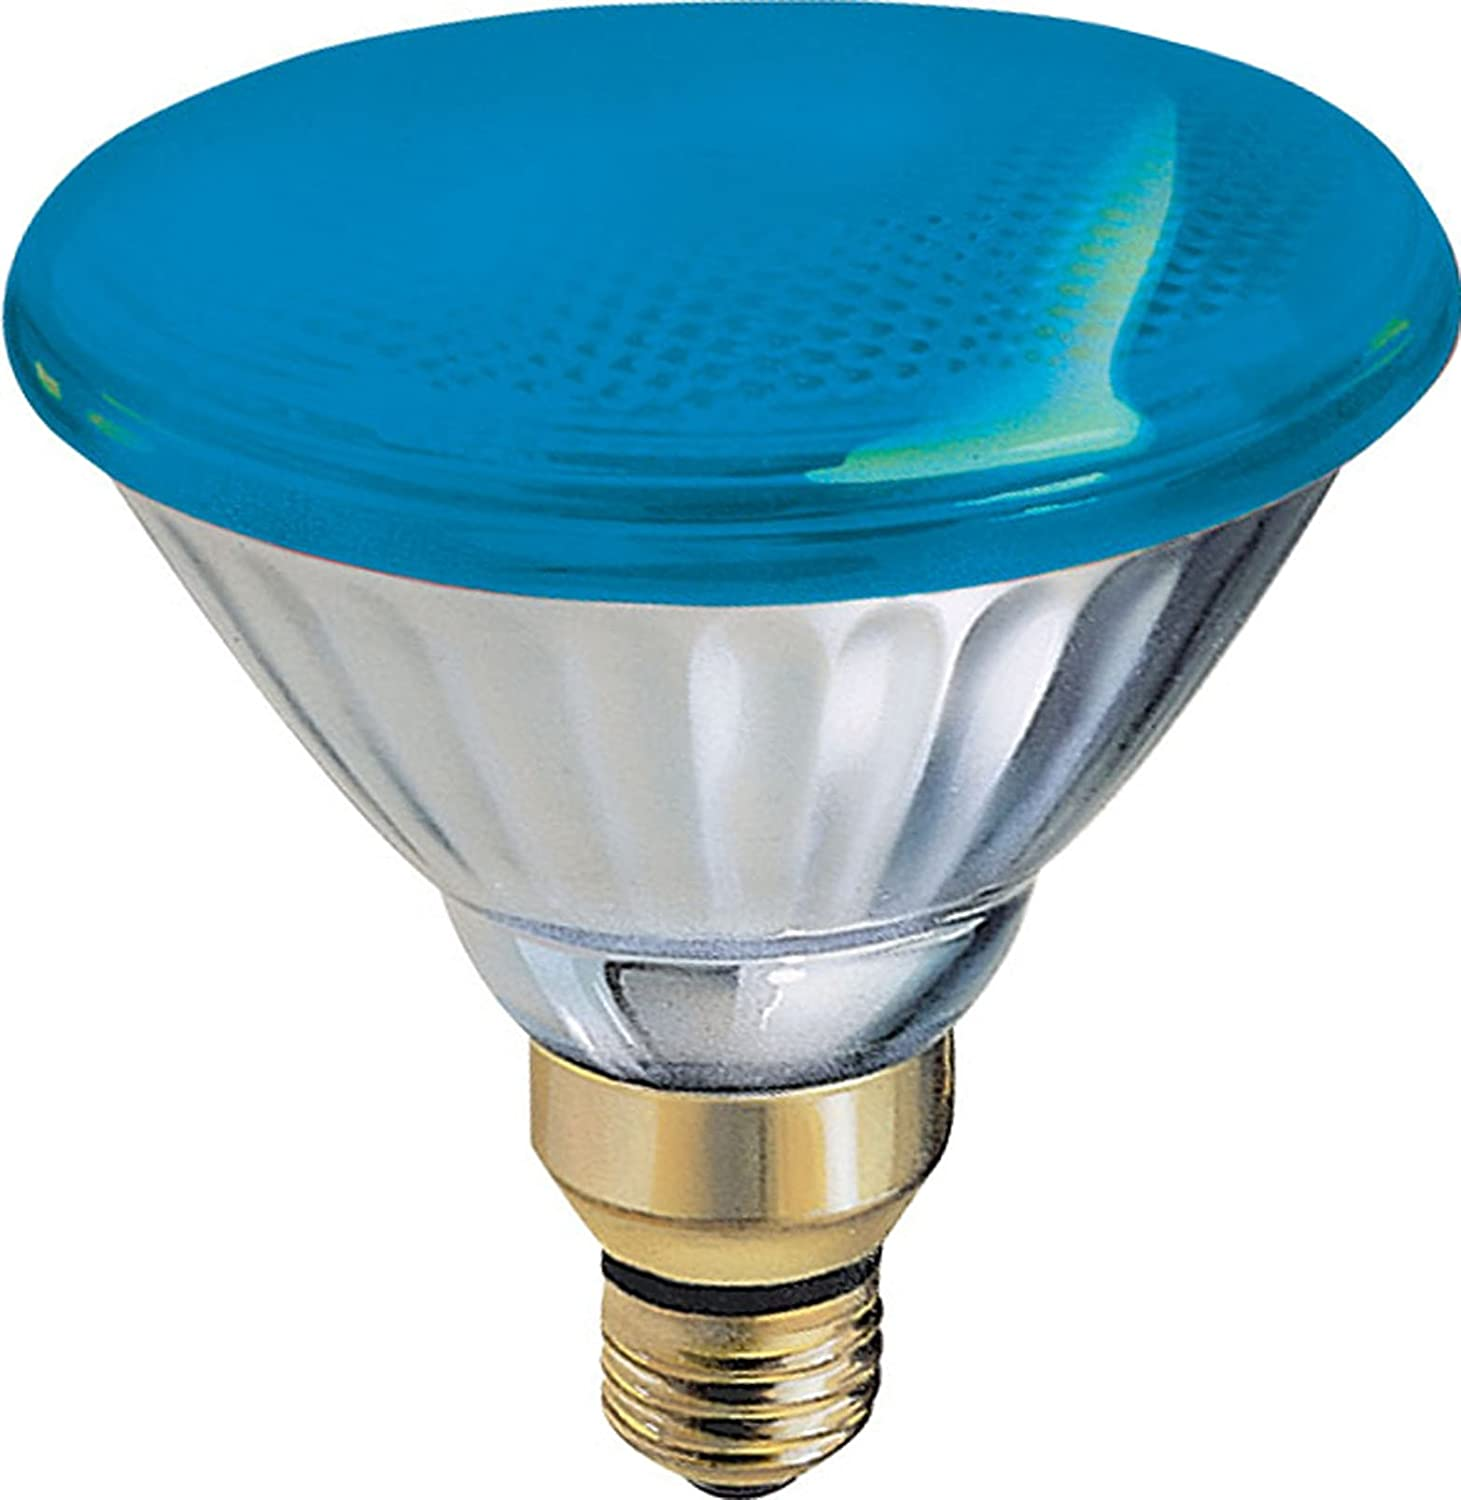 zilotek light watch bulb blue led flame bulbs youtube lighting